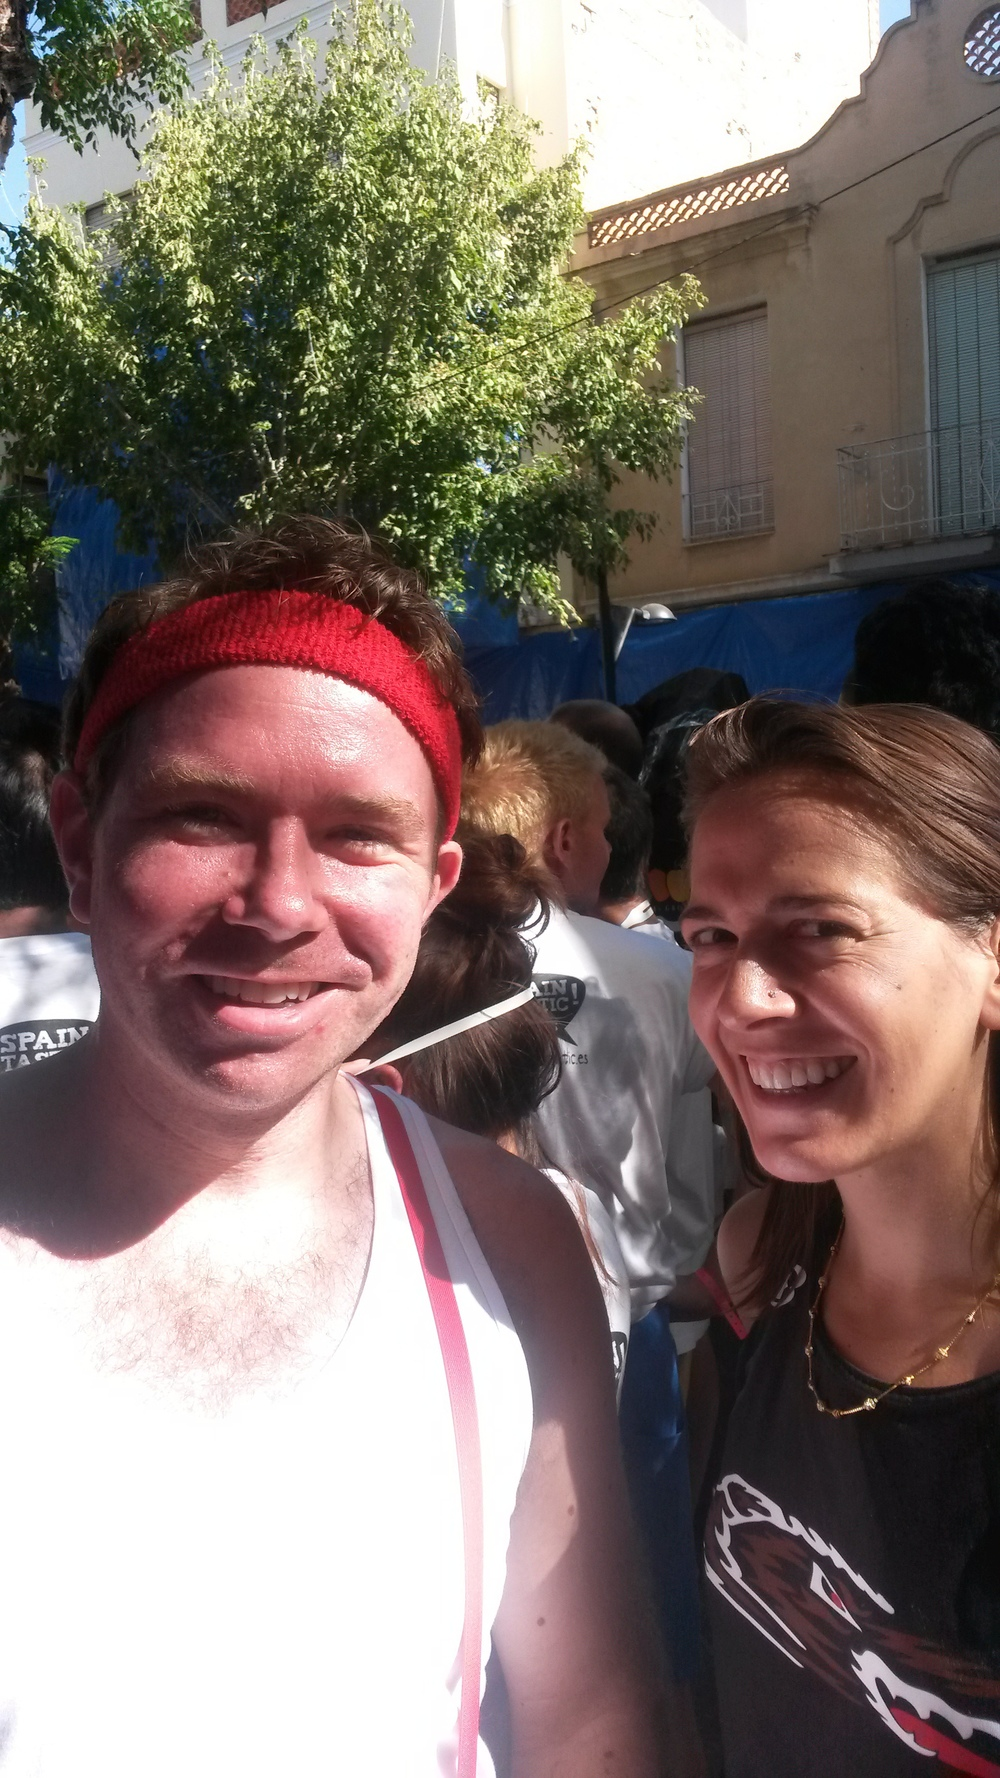 #TeamTomatoJos  moments before the start of LaTomatina 2014